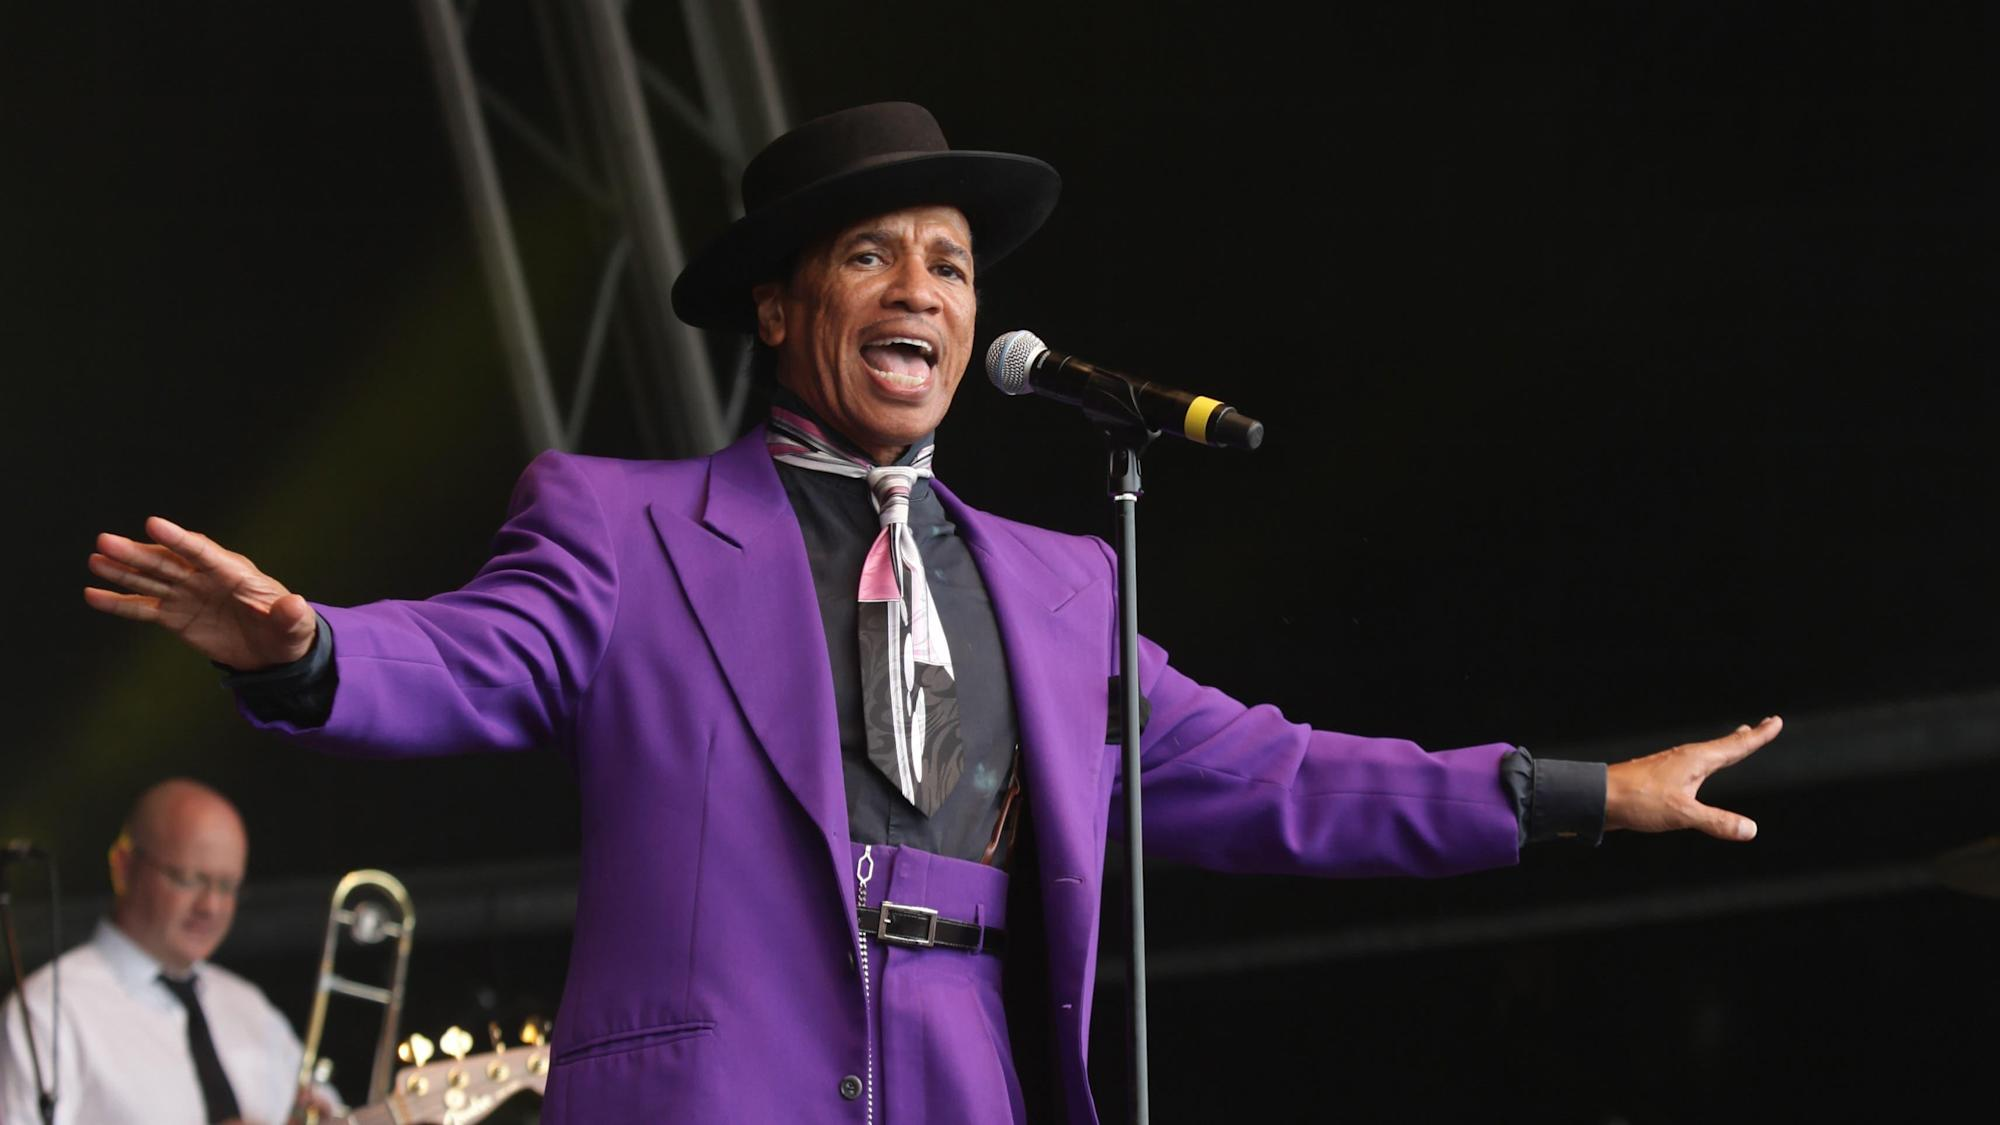 Kid Creole 'looks after his Coconuts' with sale of rights to 80s hits